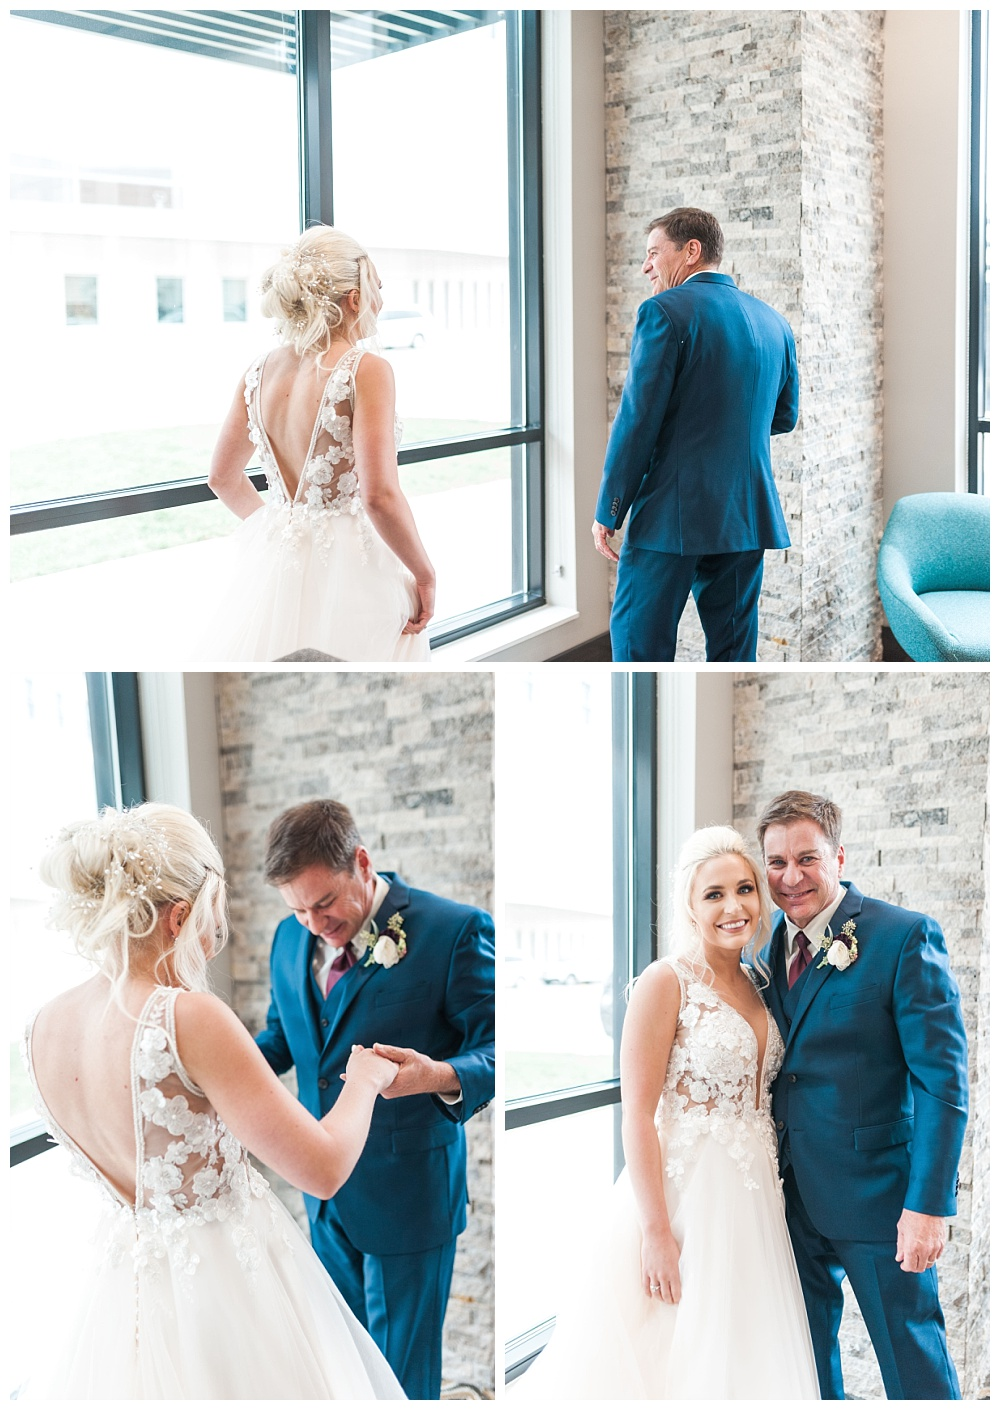 Stephanie Marie Photography Saint Marys Catholic Church Bella Sala Wedding Iowa City Tiffin Wedding Photographer Alex Bobby Telford_0013.jpg